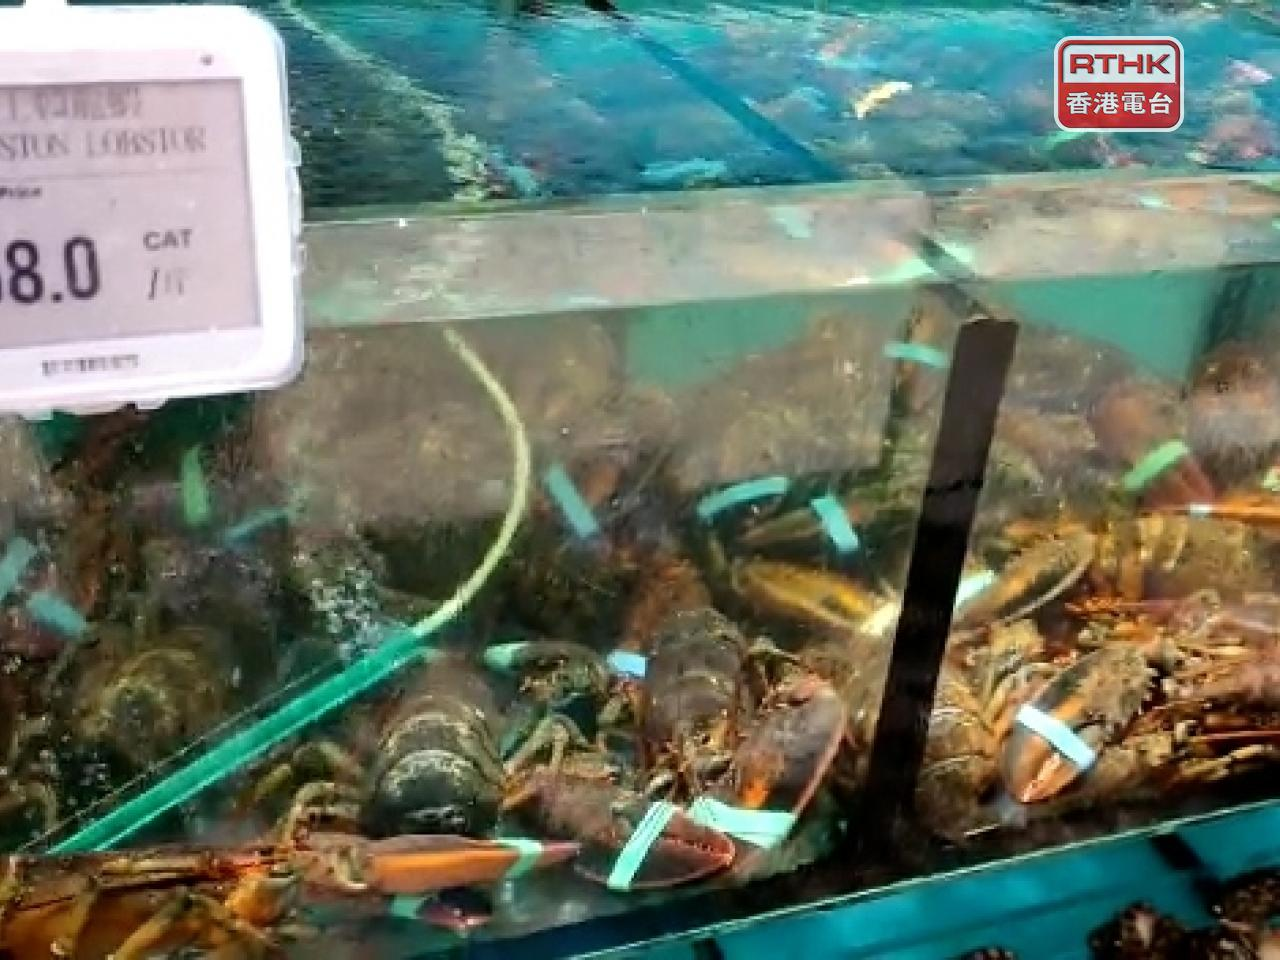 WWF-Hong Kong urges the public to avoid eating Boston lobster as a way to save the environment. Photo: RTHK